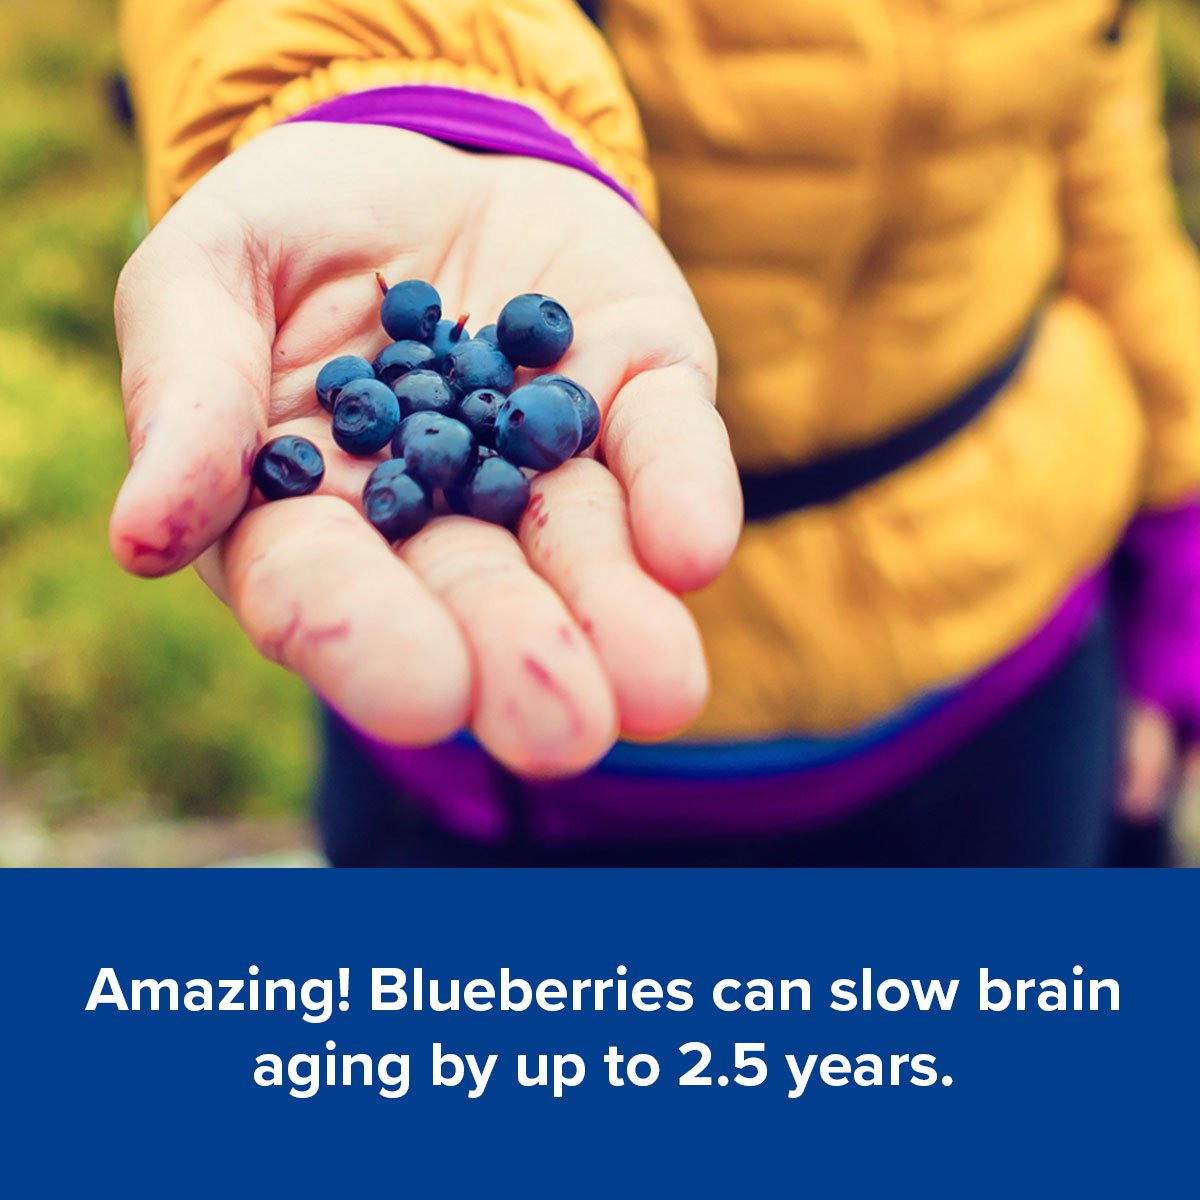 Amazing! Blueberries can slow brain aging by up to 2.5 years.